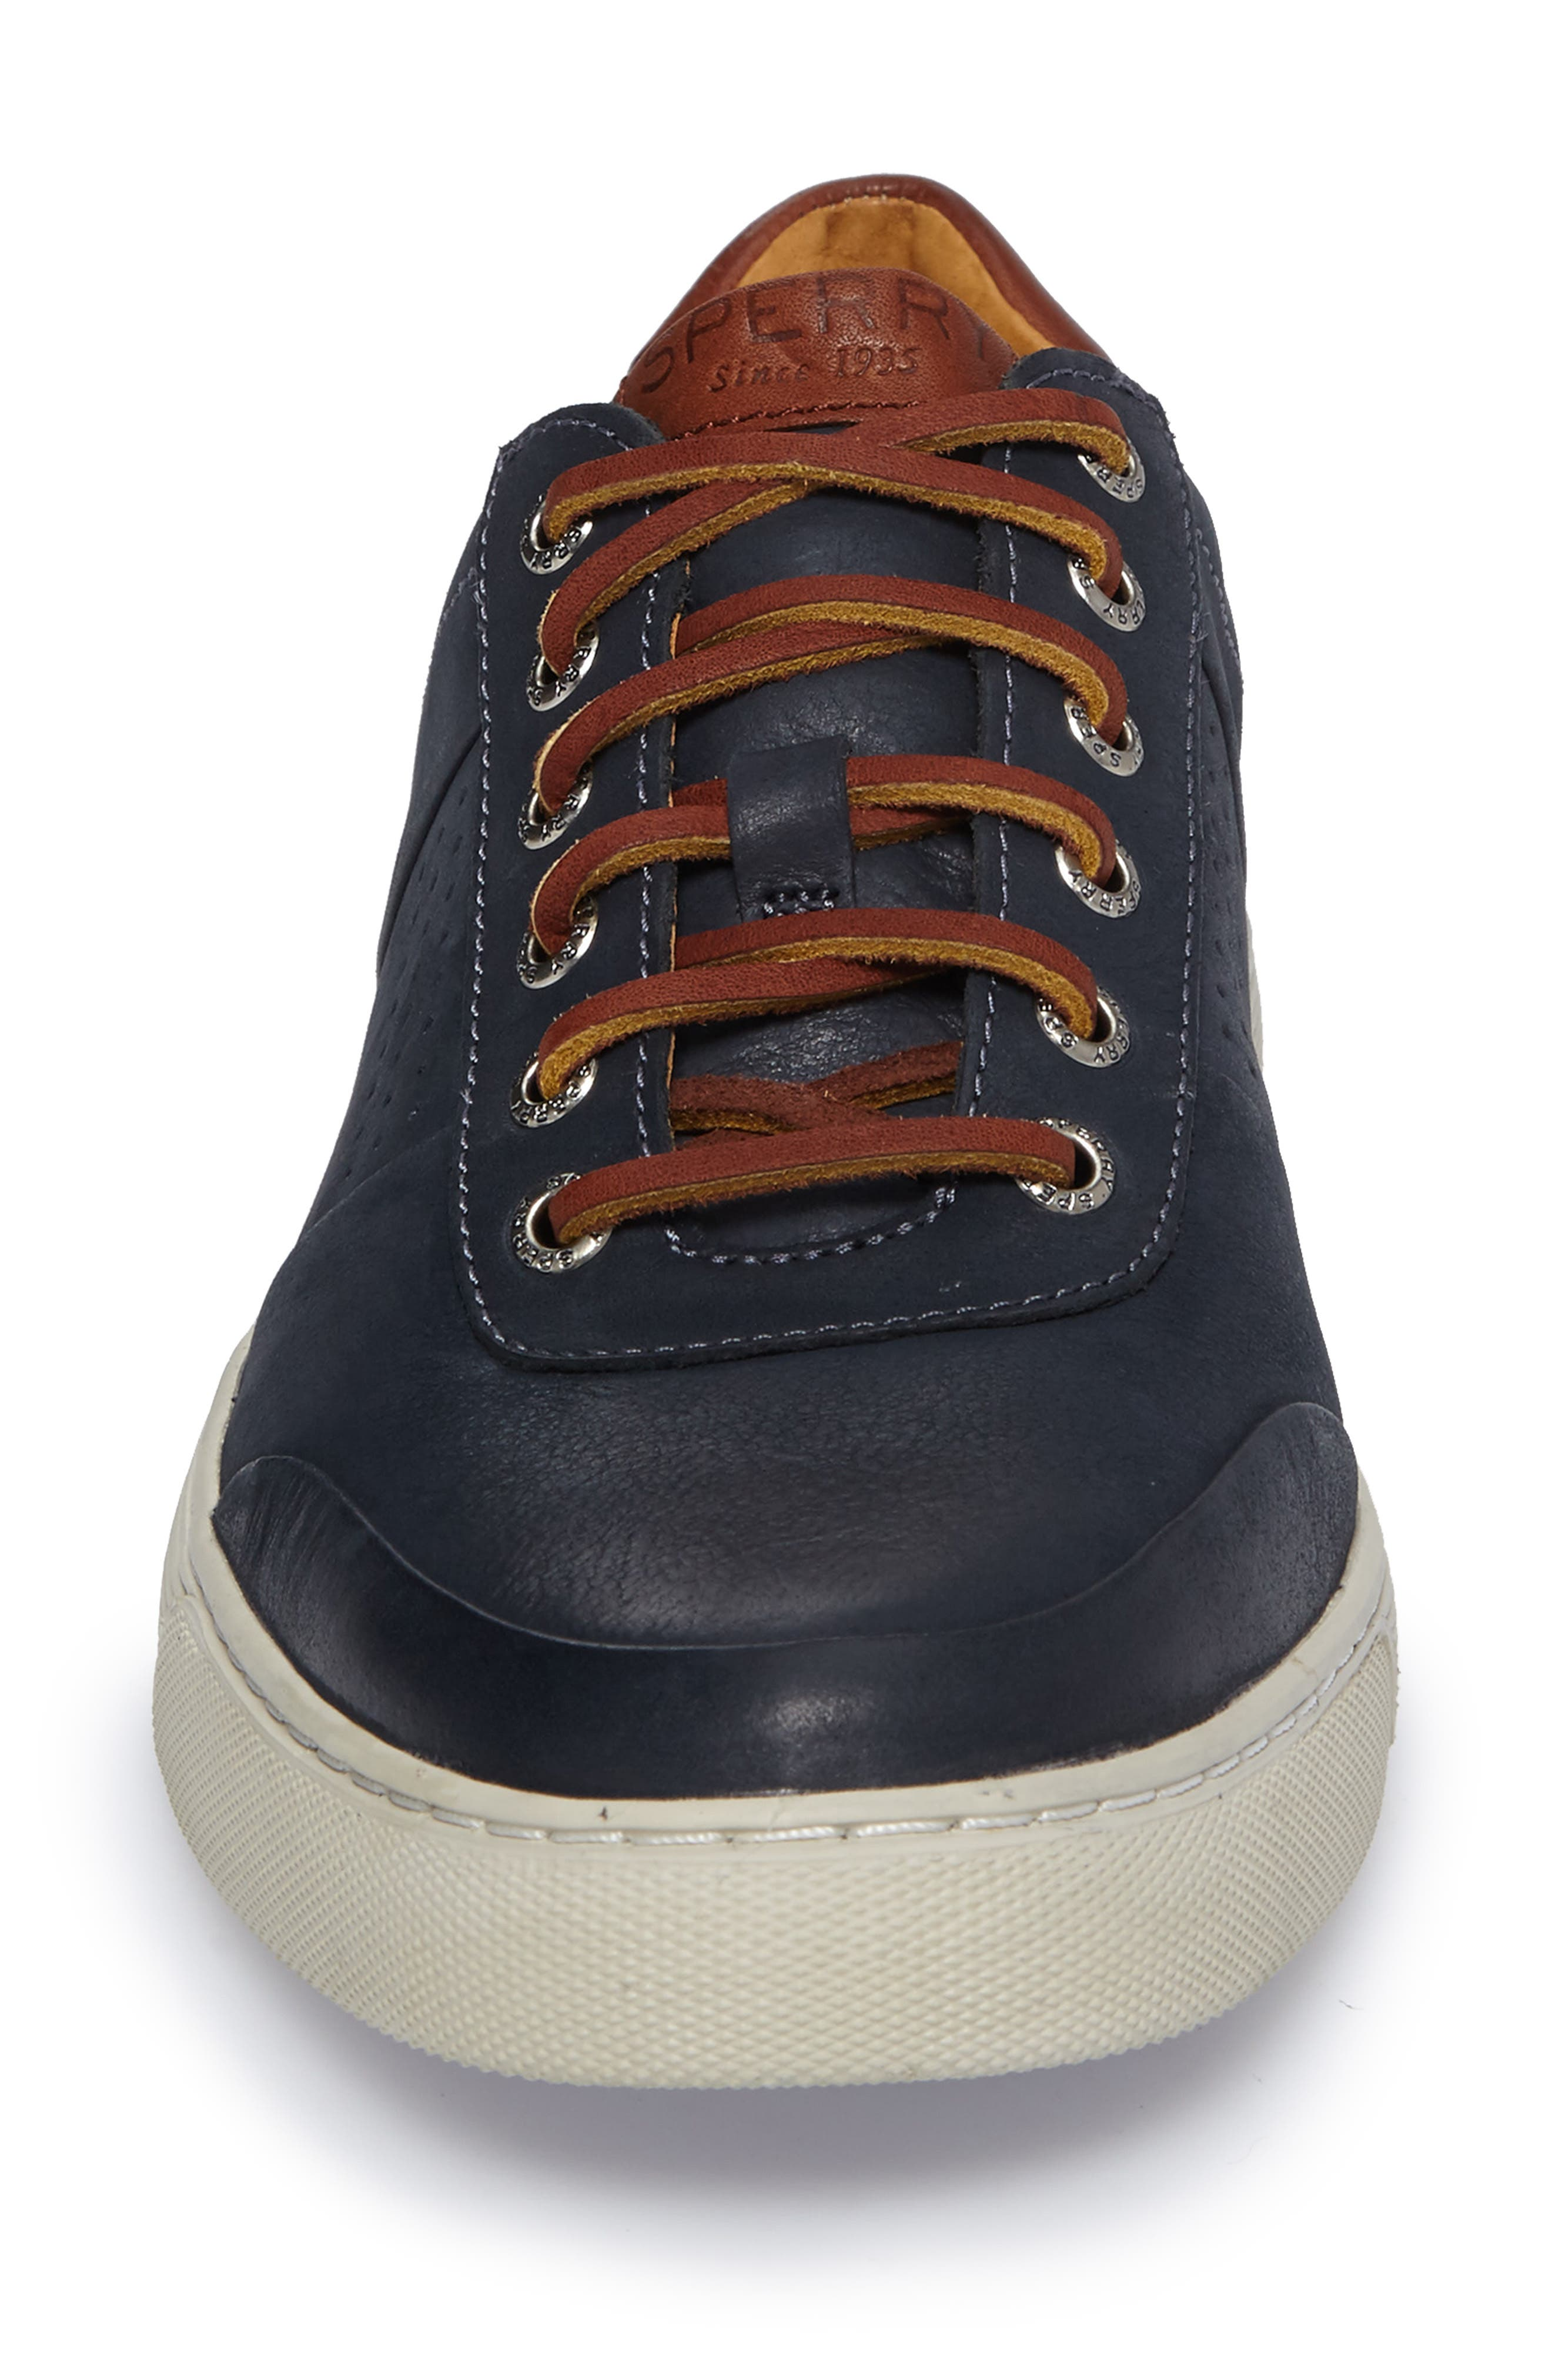 Gold Cup Sport Sneaker,                             Alternate thumbnail 4, color,                             410